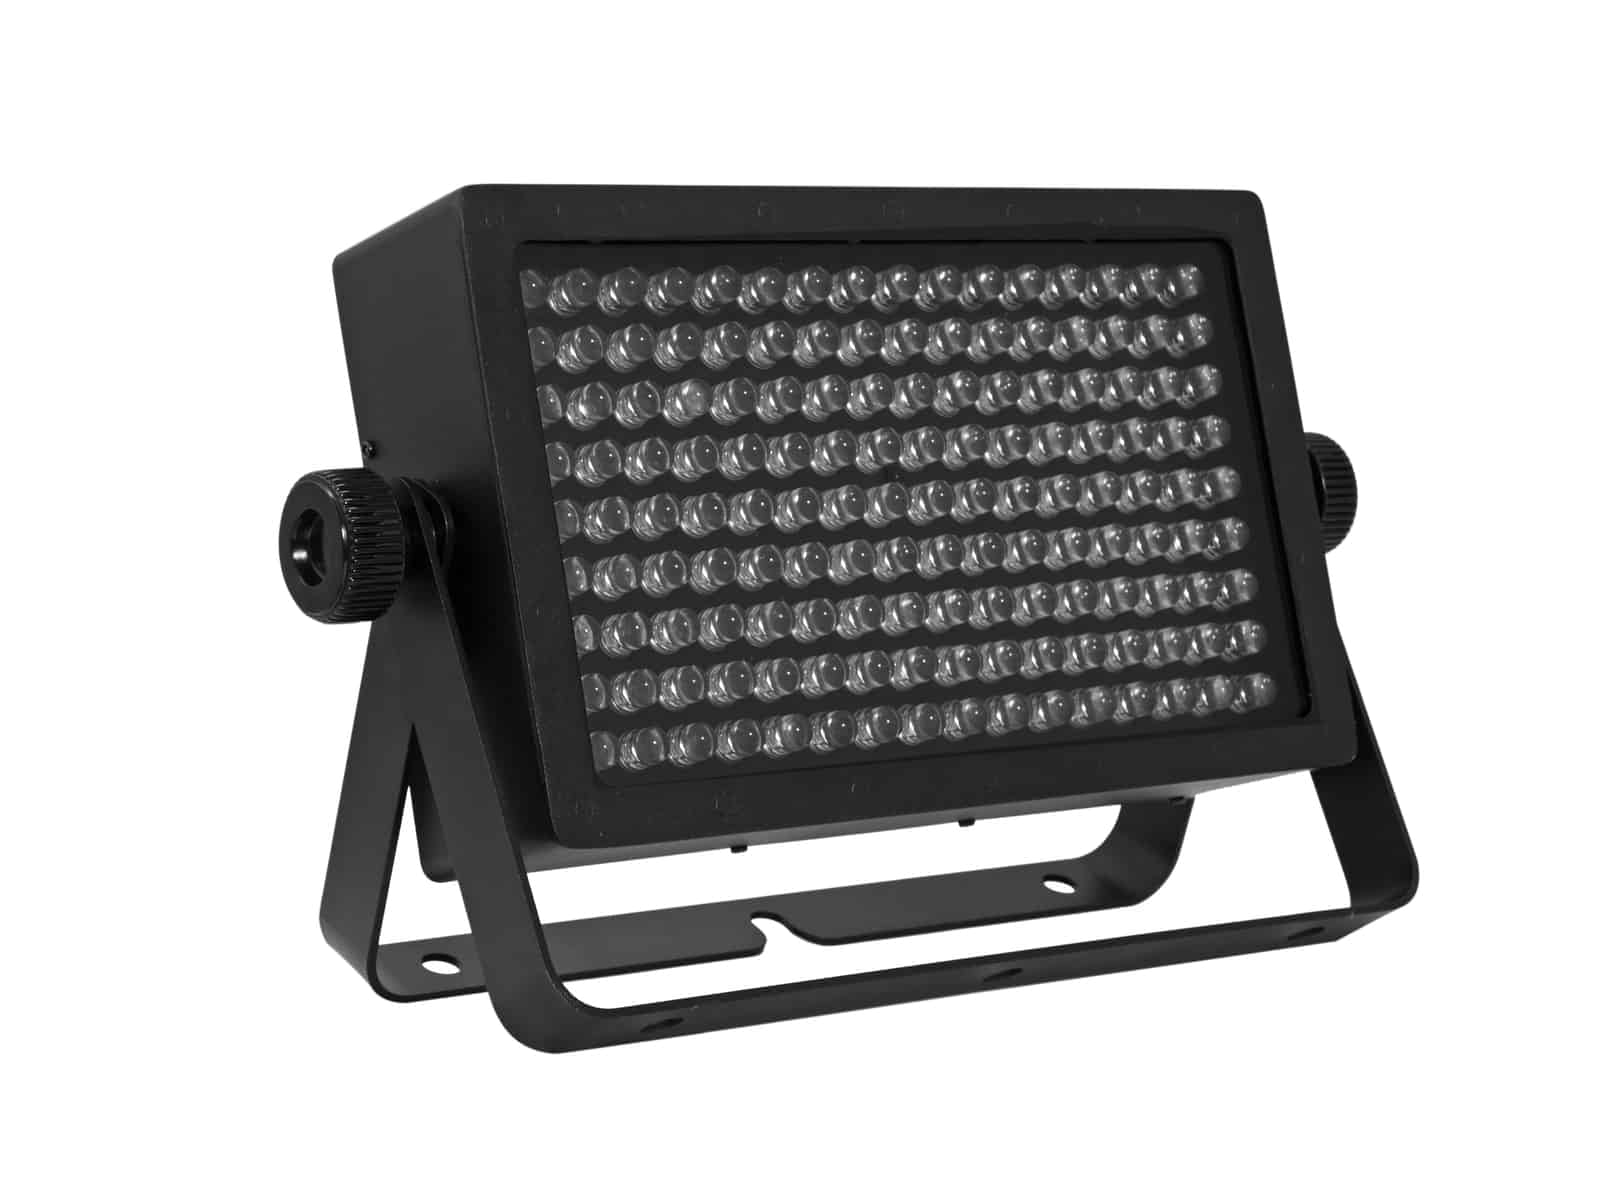 EUROLITE LED FLD-144 UV 10mm Flood, Eurolite uv lampe, uv lampe, uv lamper, uv lys, led uv